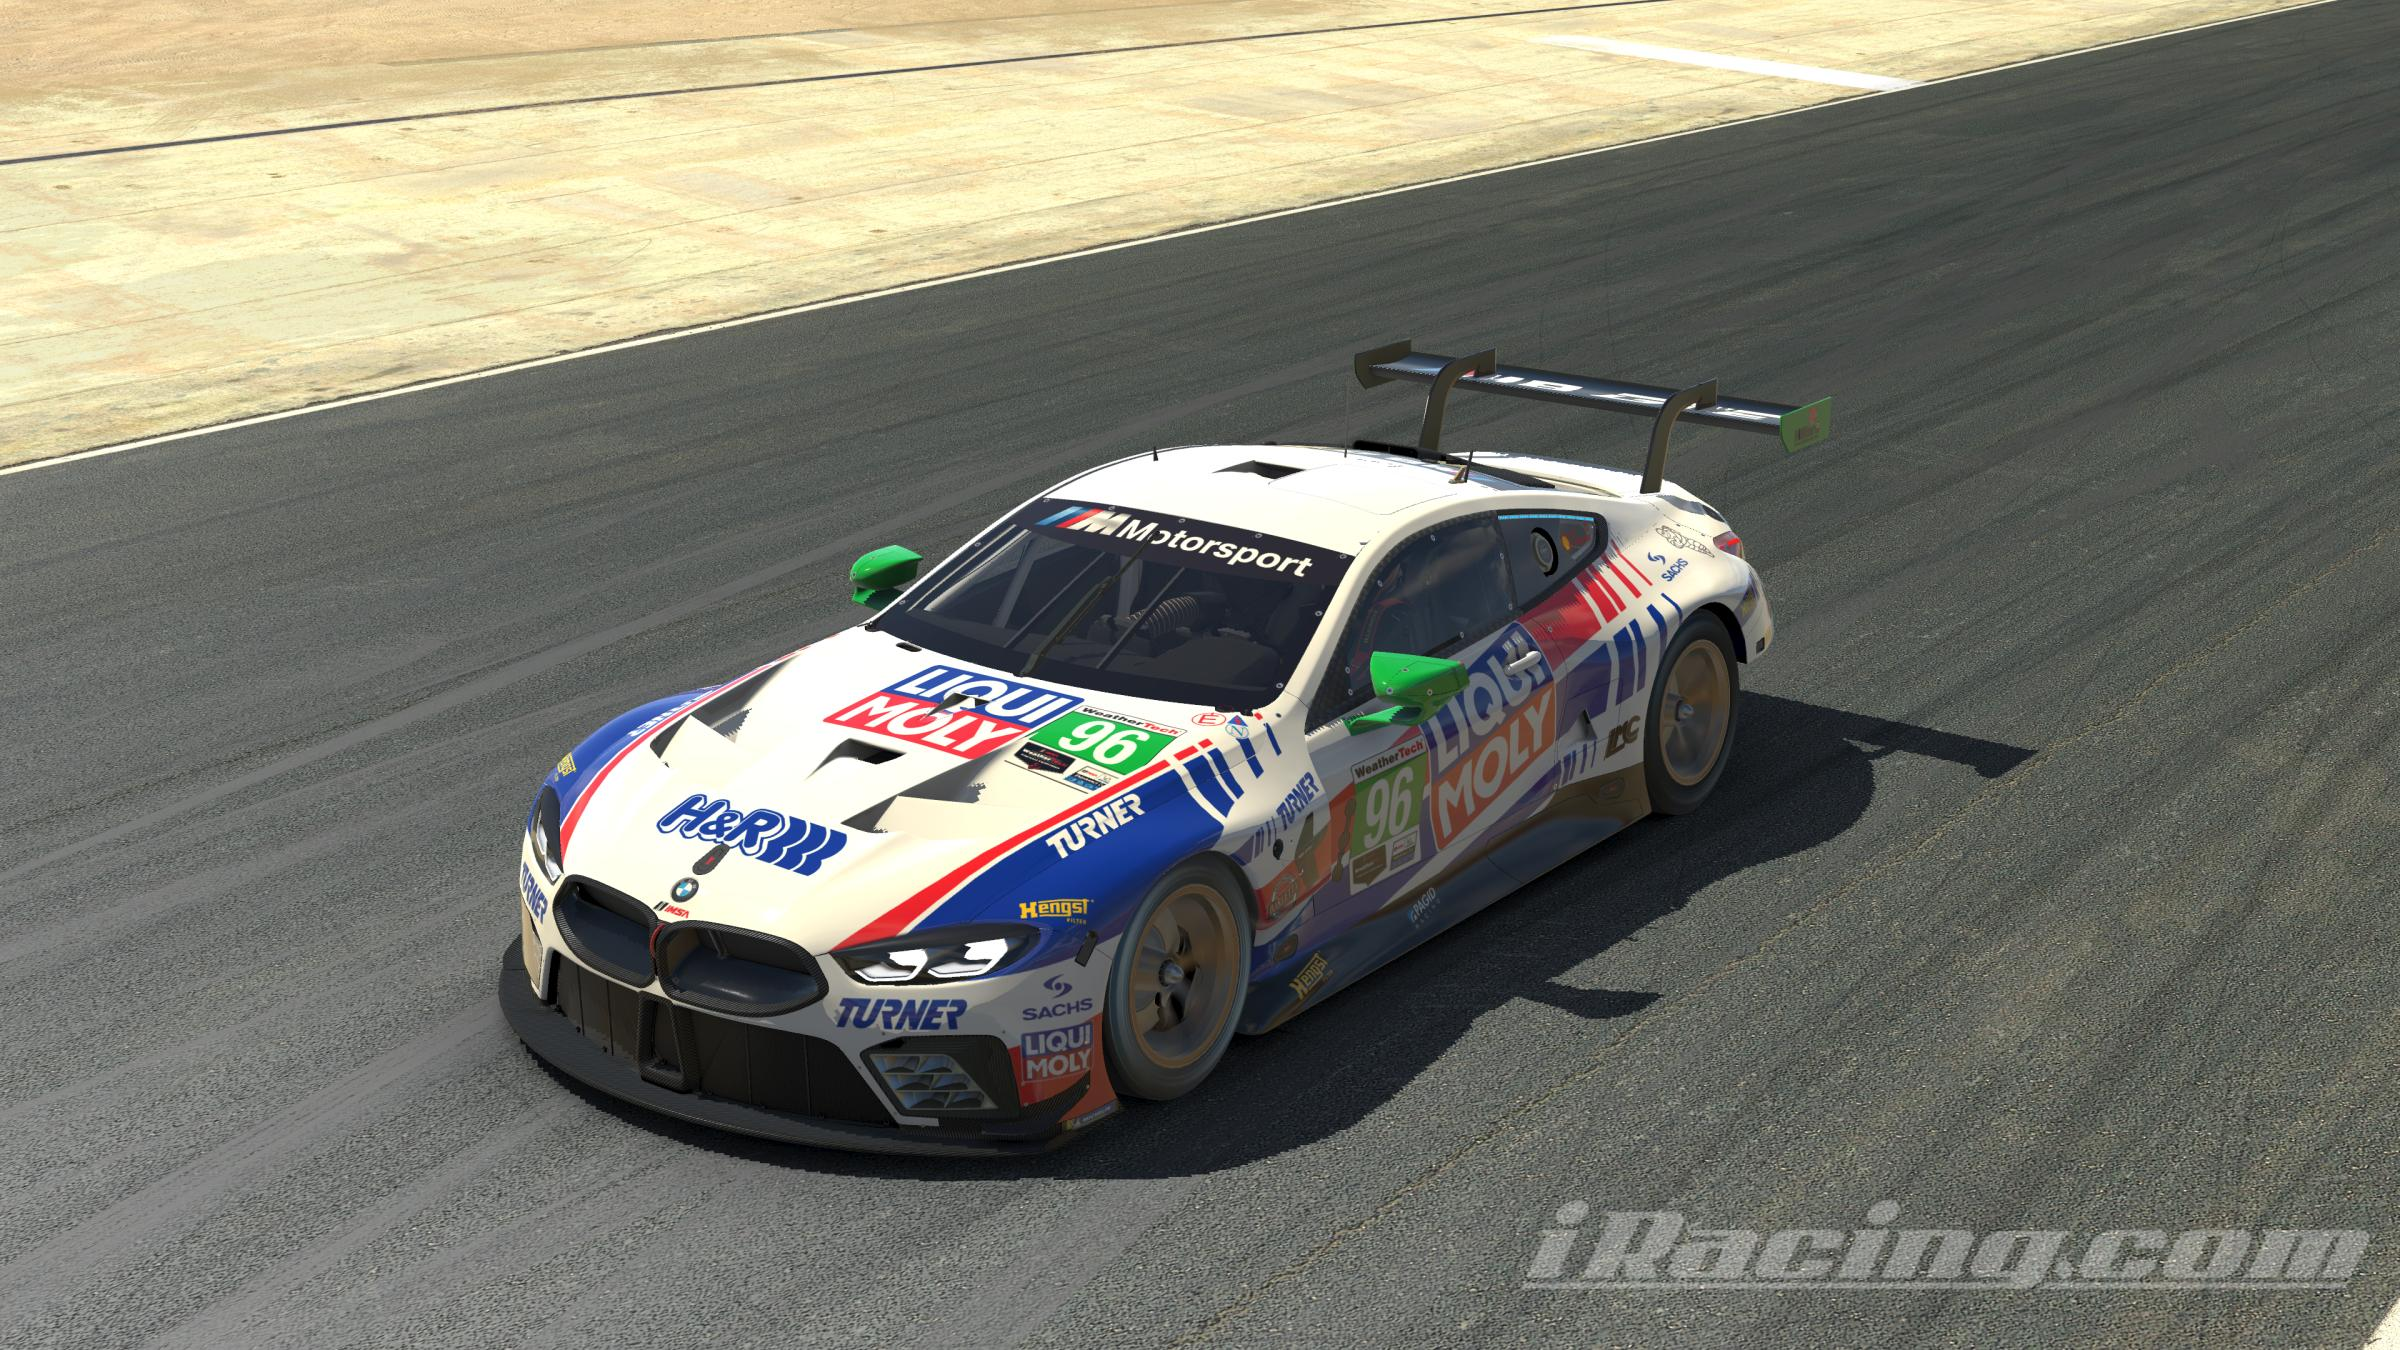 Preview of BMW M8 GTE - 2020 TURNER LIQUI MOLY by Andrew Blackmore